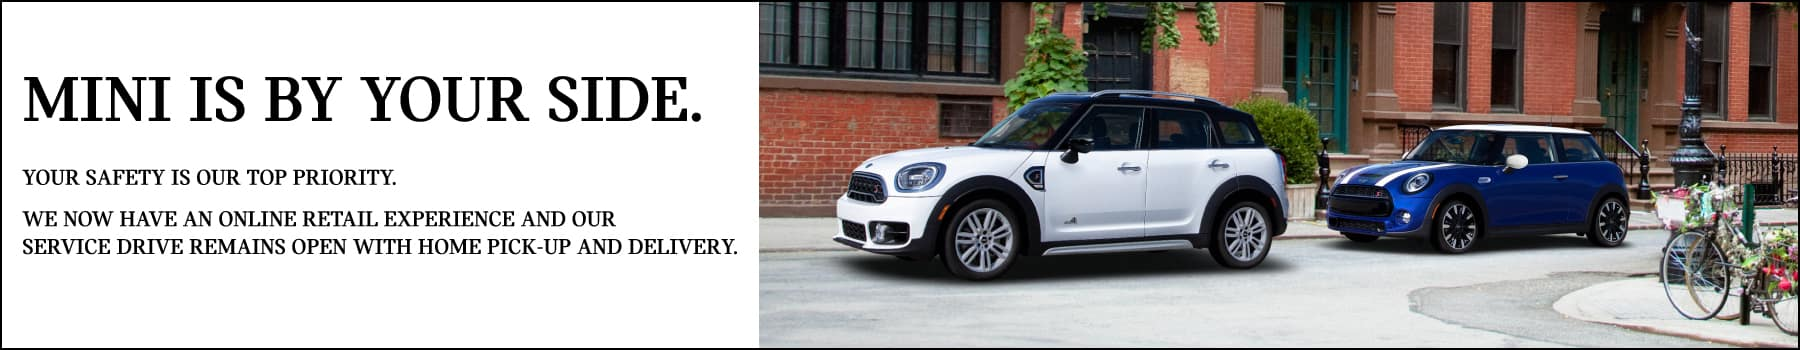 mini is by your side.